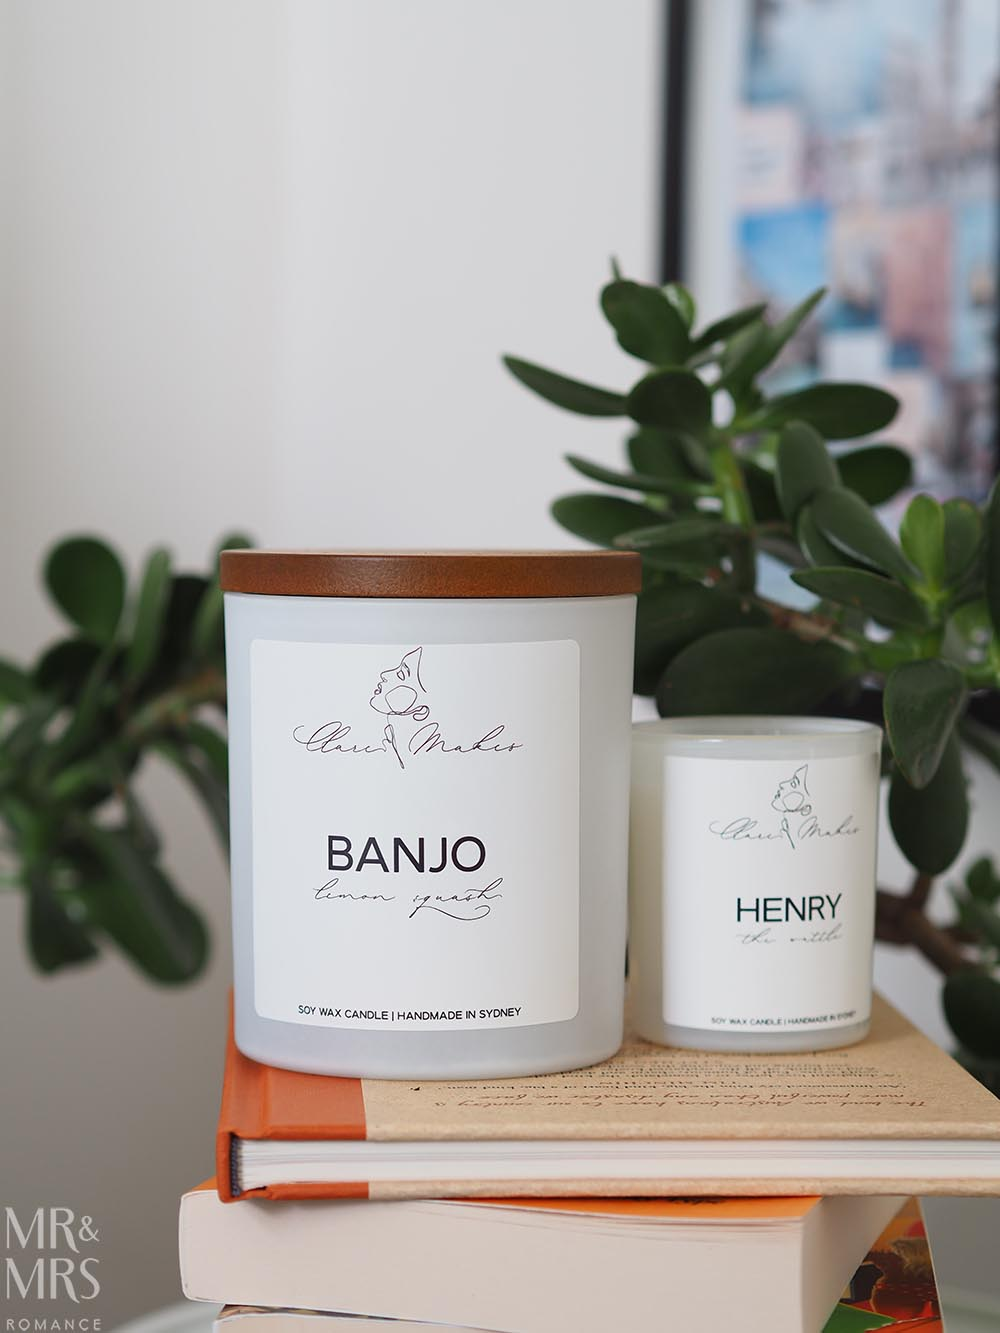 Clare Makes candles Banjo and Henry